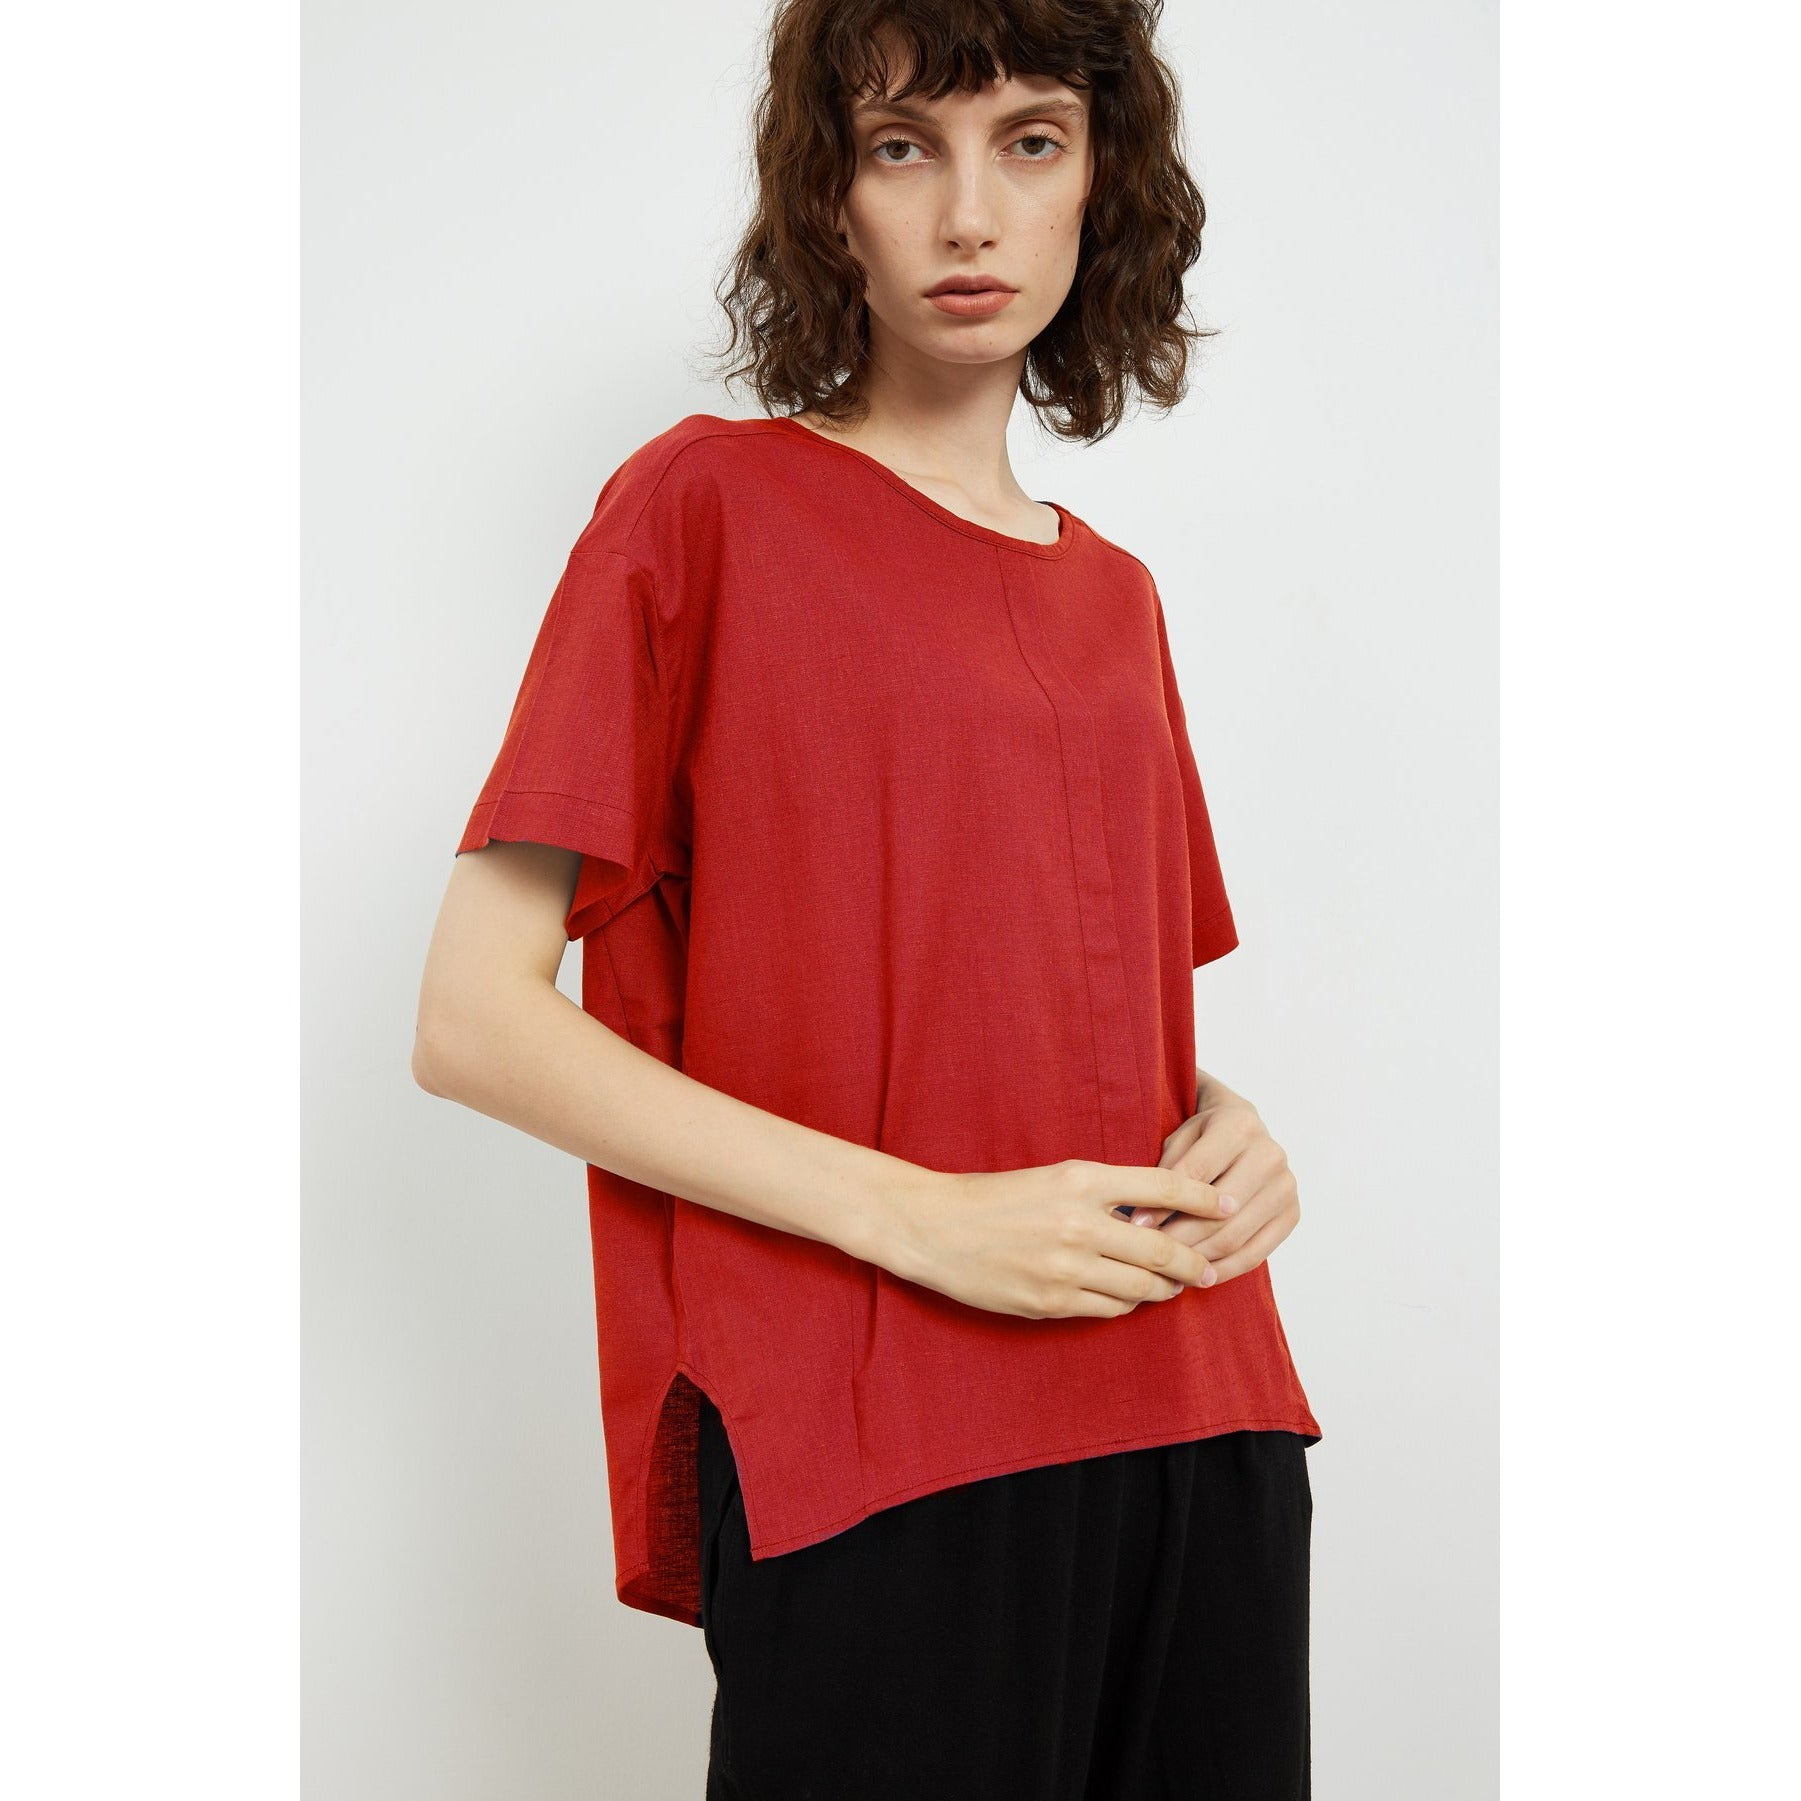 Tirelli Digital Curved Seam top in Red